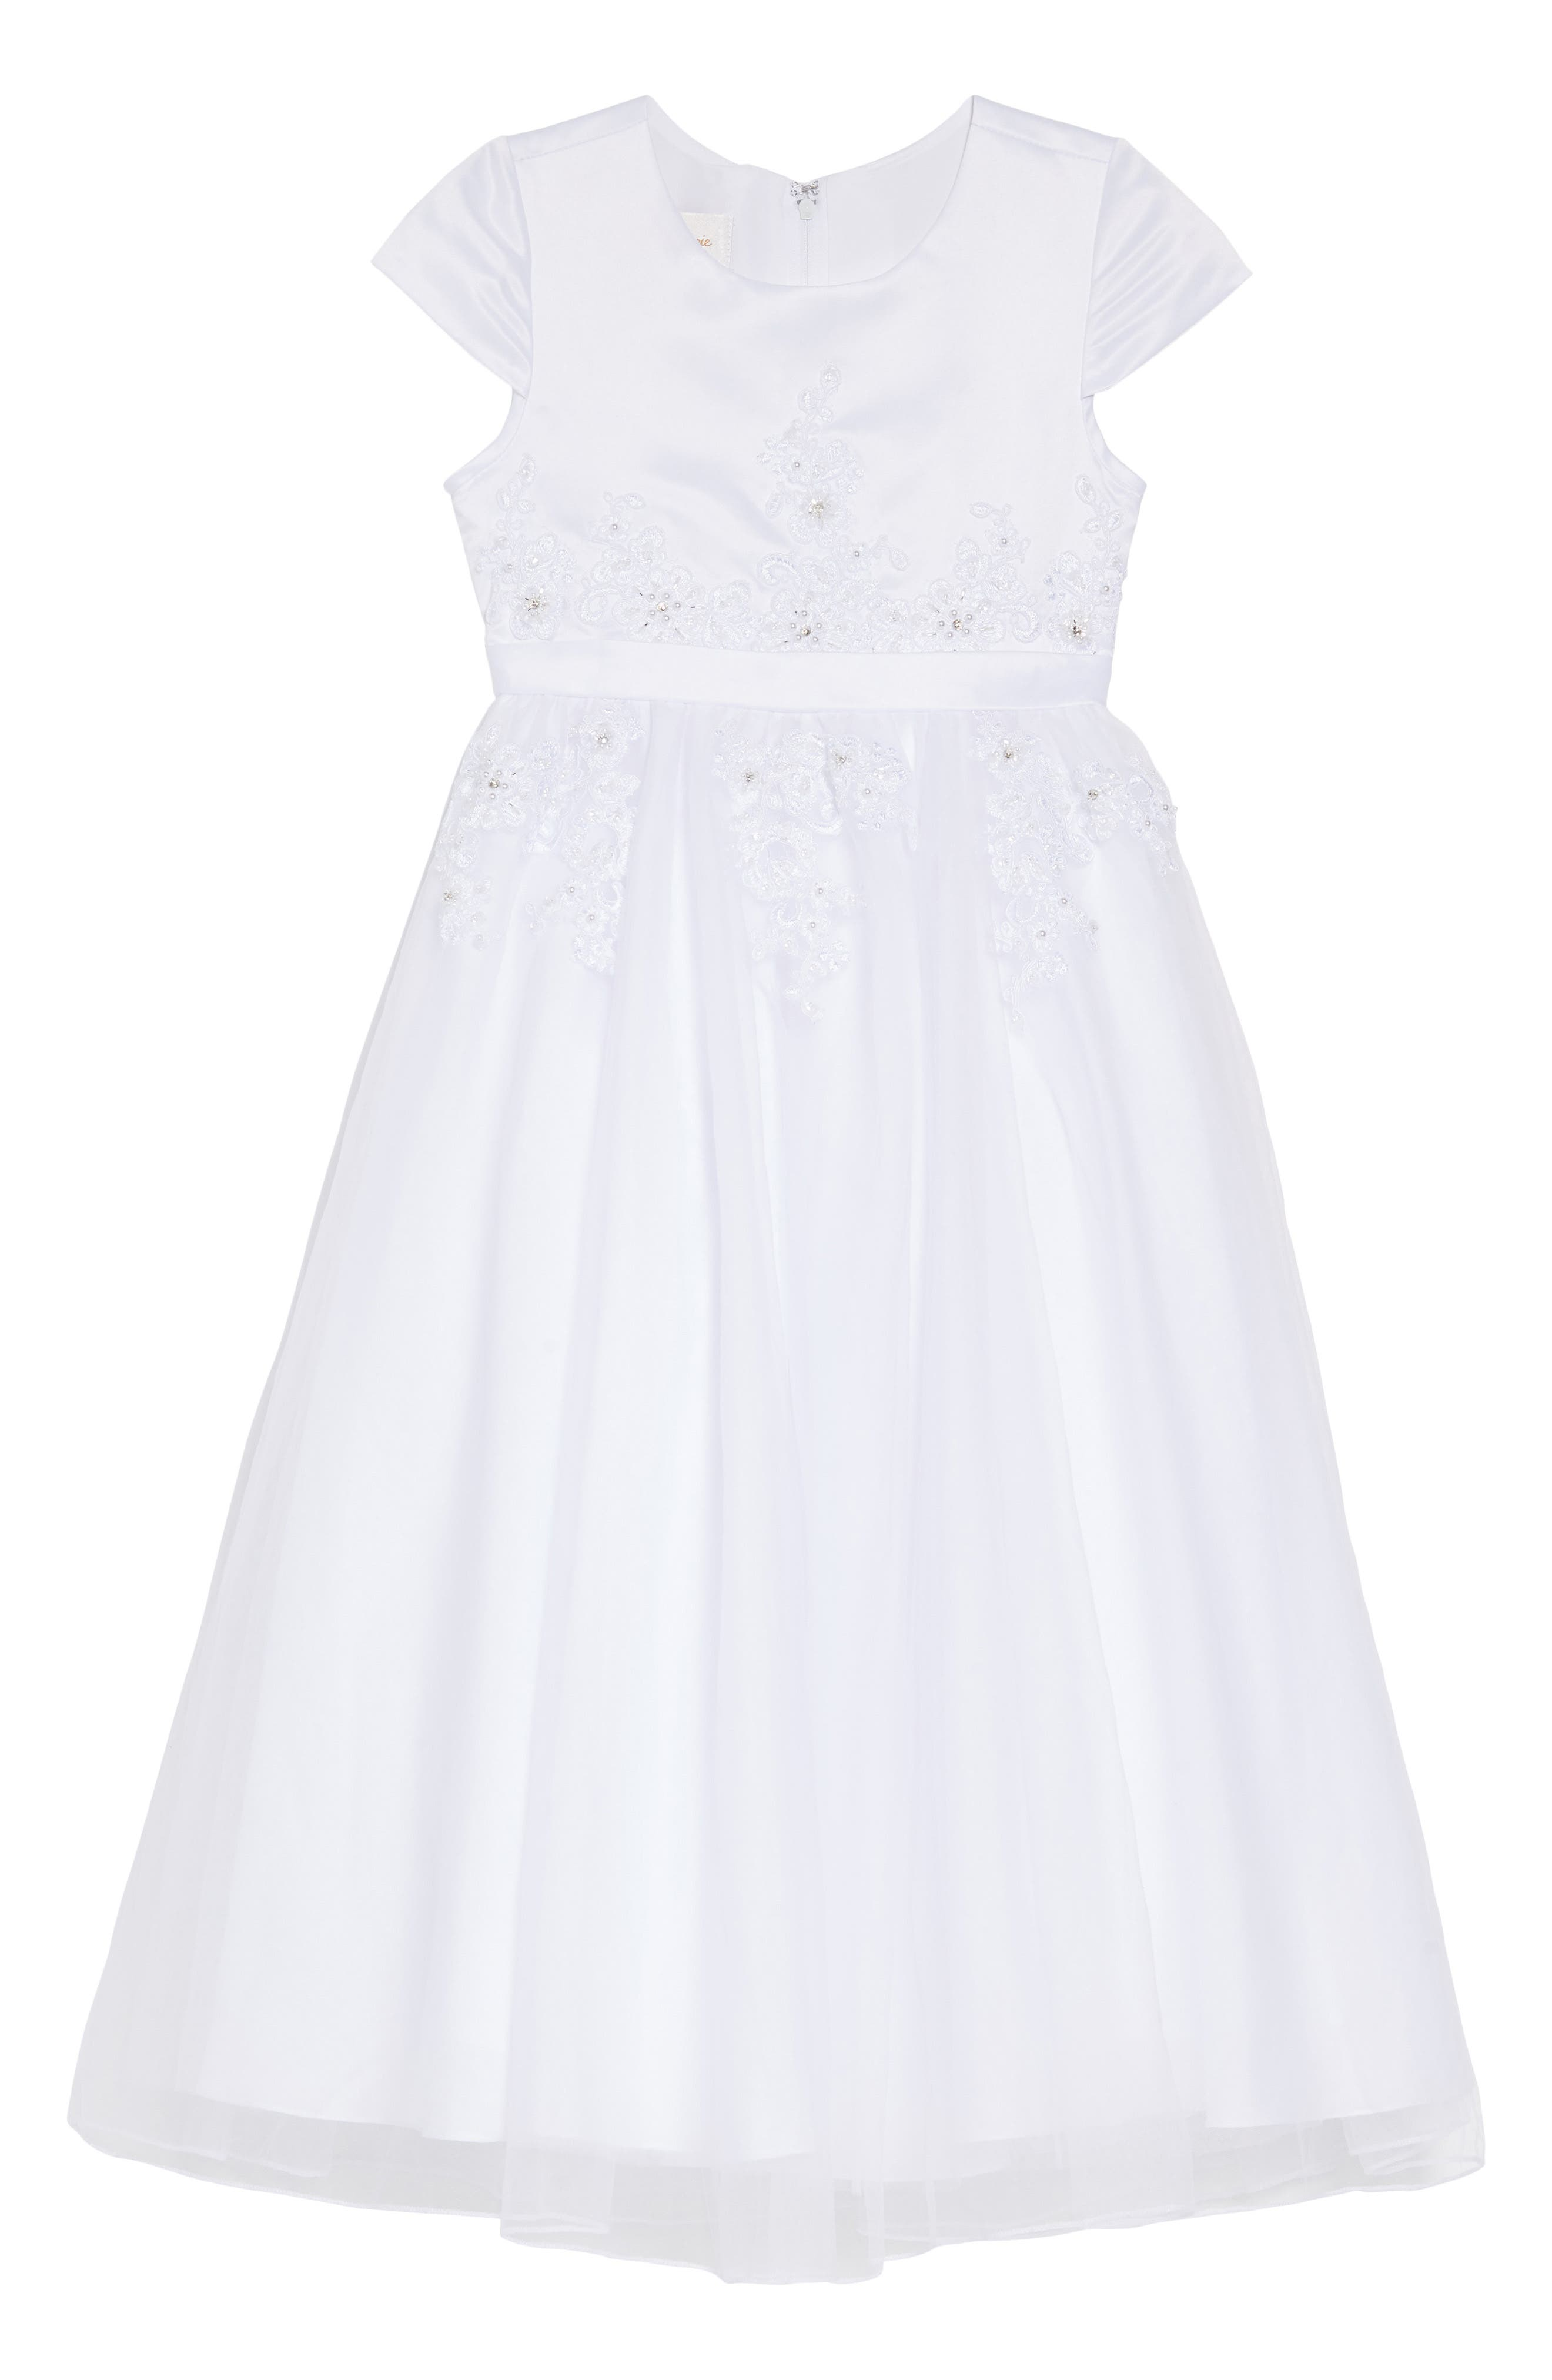 LAUREN MARIE Beaded Lace First Communion Dress, Main, color, WHITE